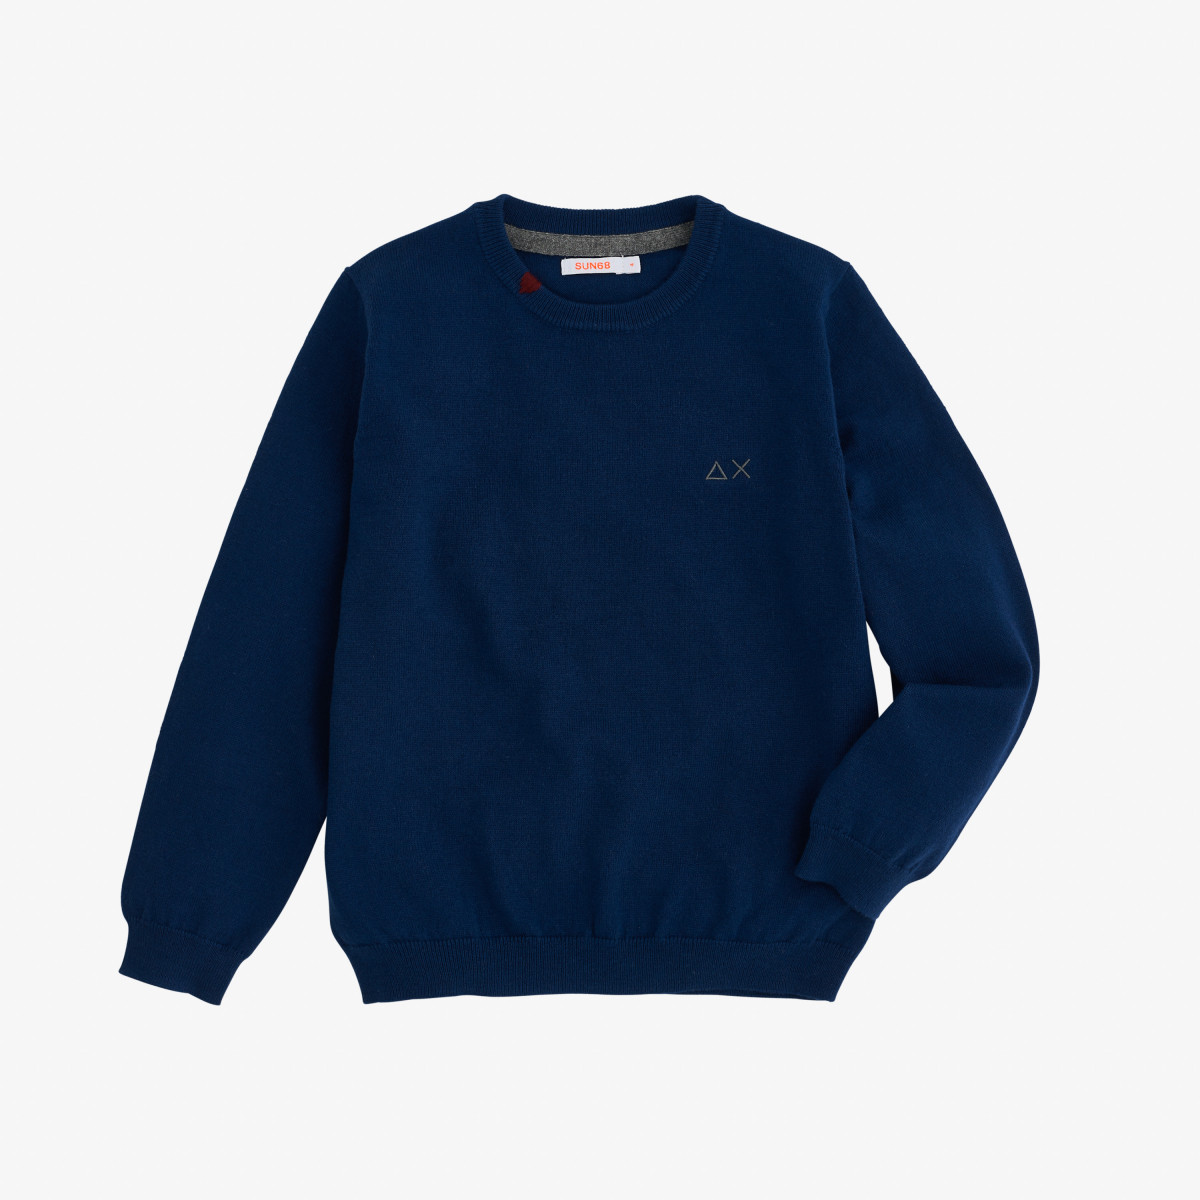 BOY'S ROUND NECK SOLID BLUE